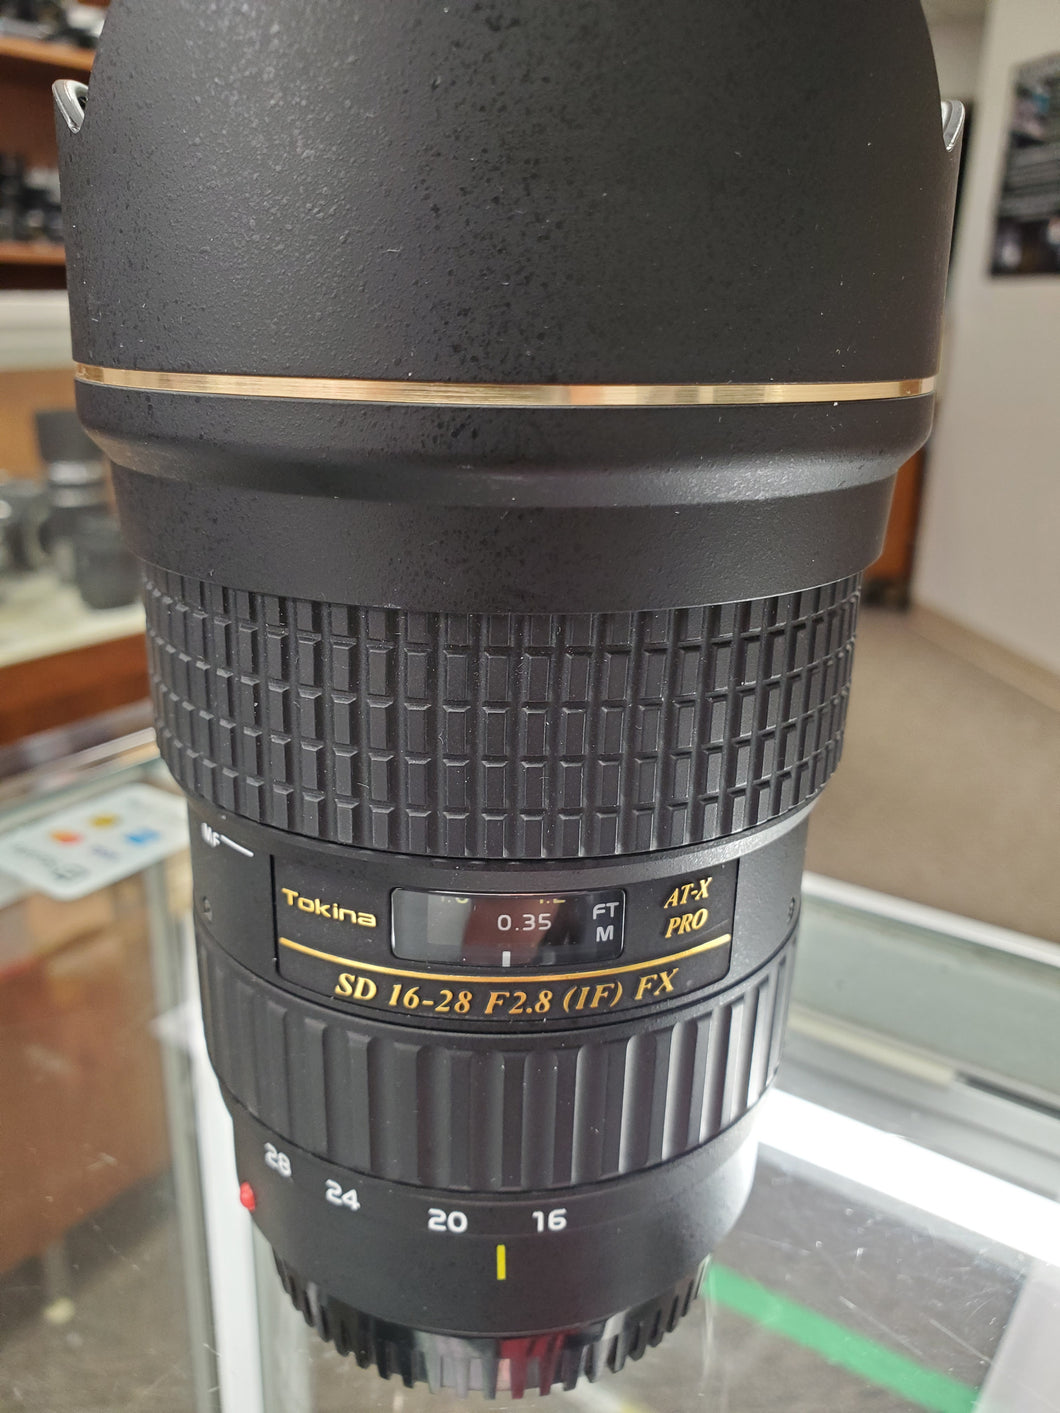 Tokina SD 16-28mm f/2.8 AT-X Pro FX Wide Angle Lens - for Canon - Condition 10/10 - Paramount Camera & Repair - Saskatoon Canada Used Cameras Used Lenses Batteries Grips Chargers Studio